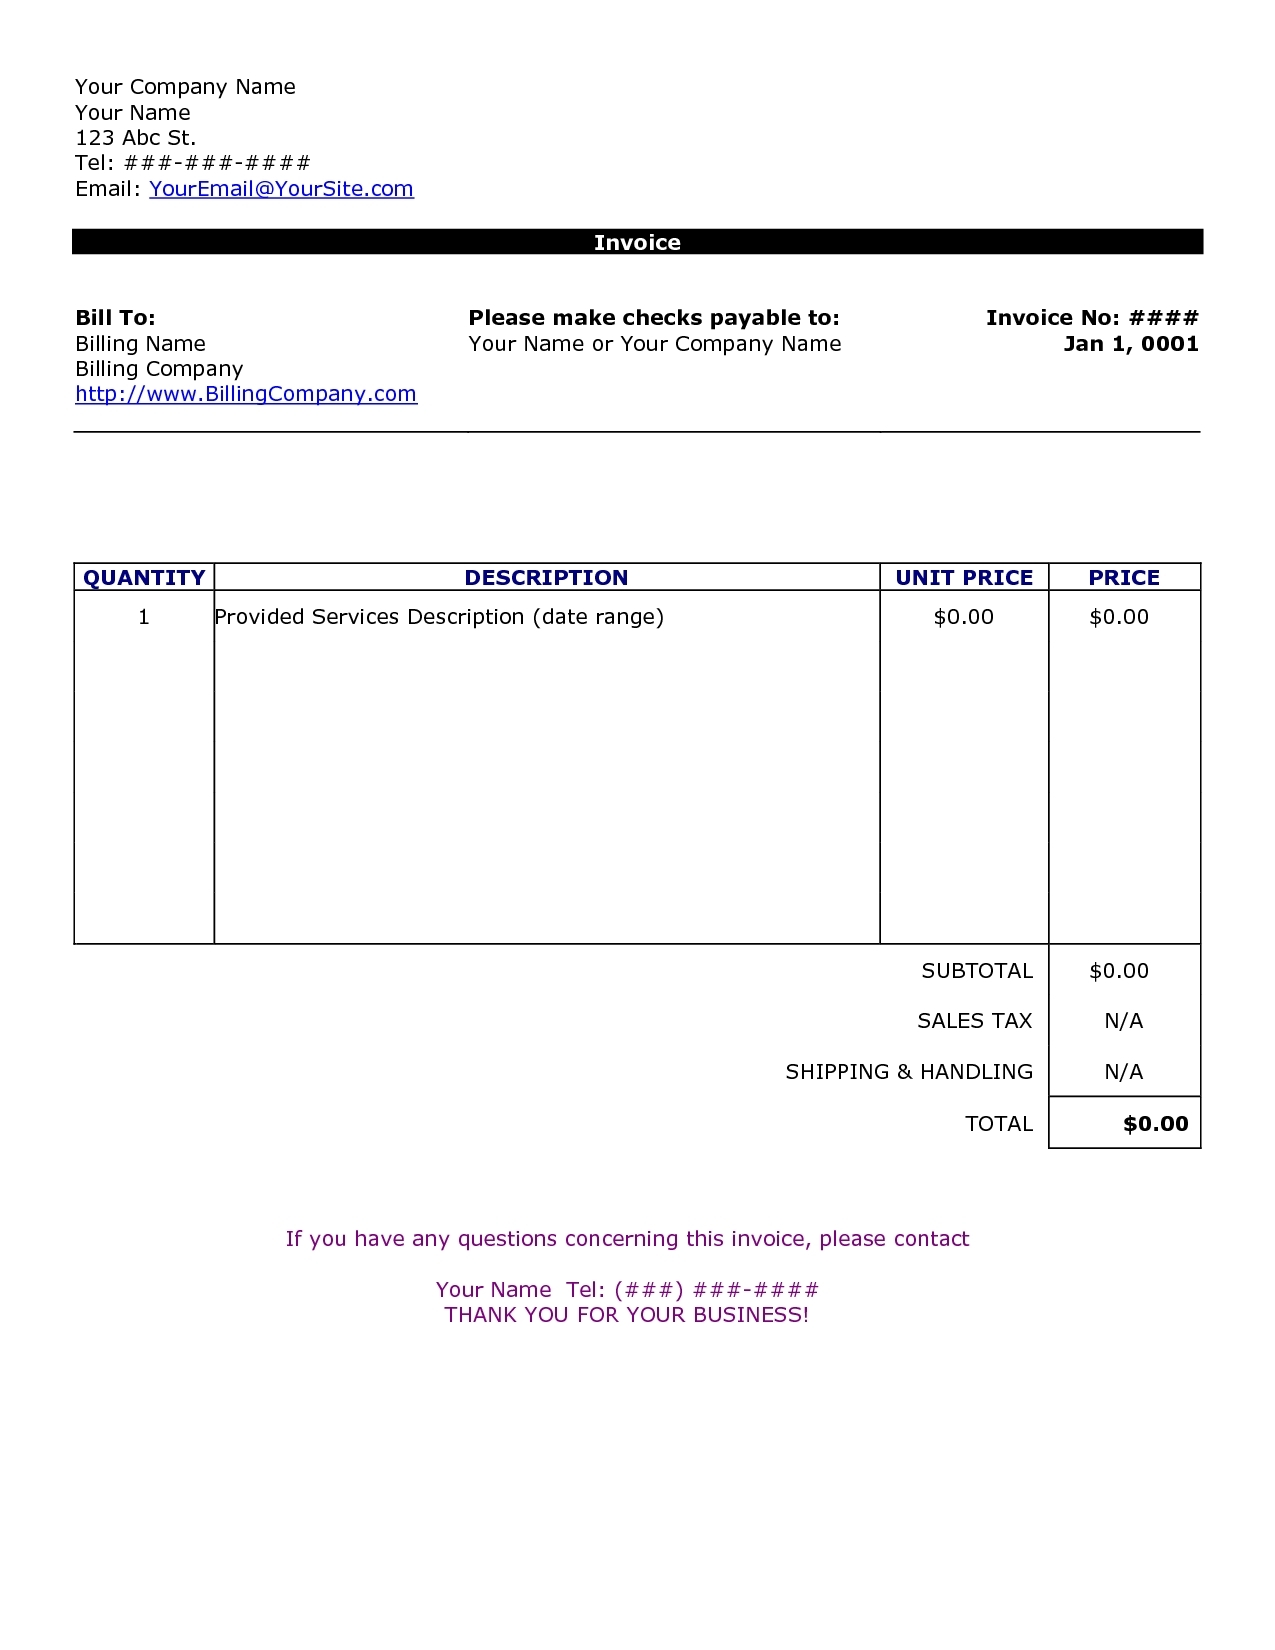 Examples Of Templates Invoices Free Excel With Templates Invoices Free Excel Download For Free